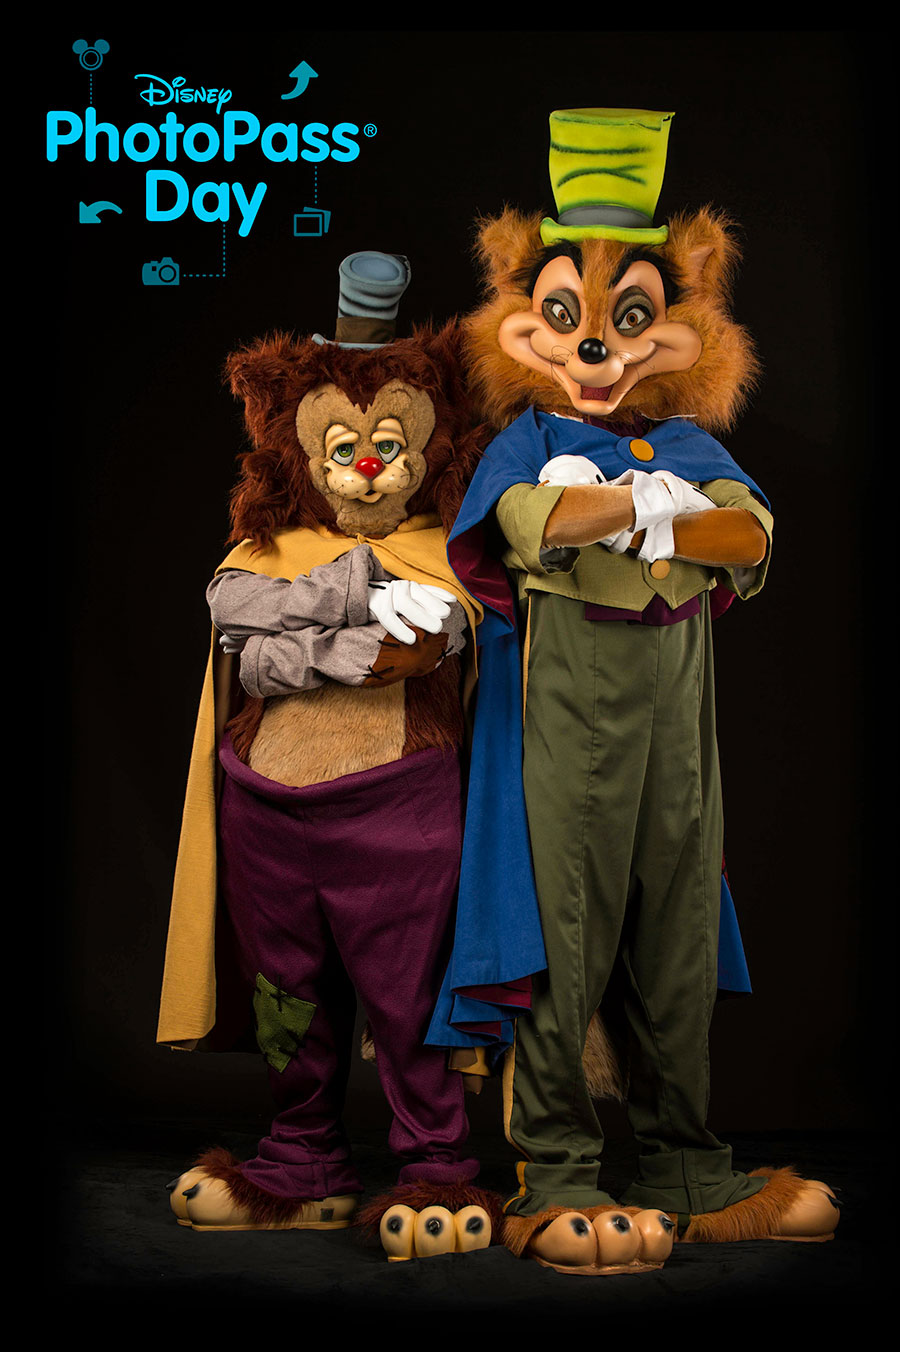 Celebrate PhotoPass Day Disneyland Resort and Walt Disney World Resort